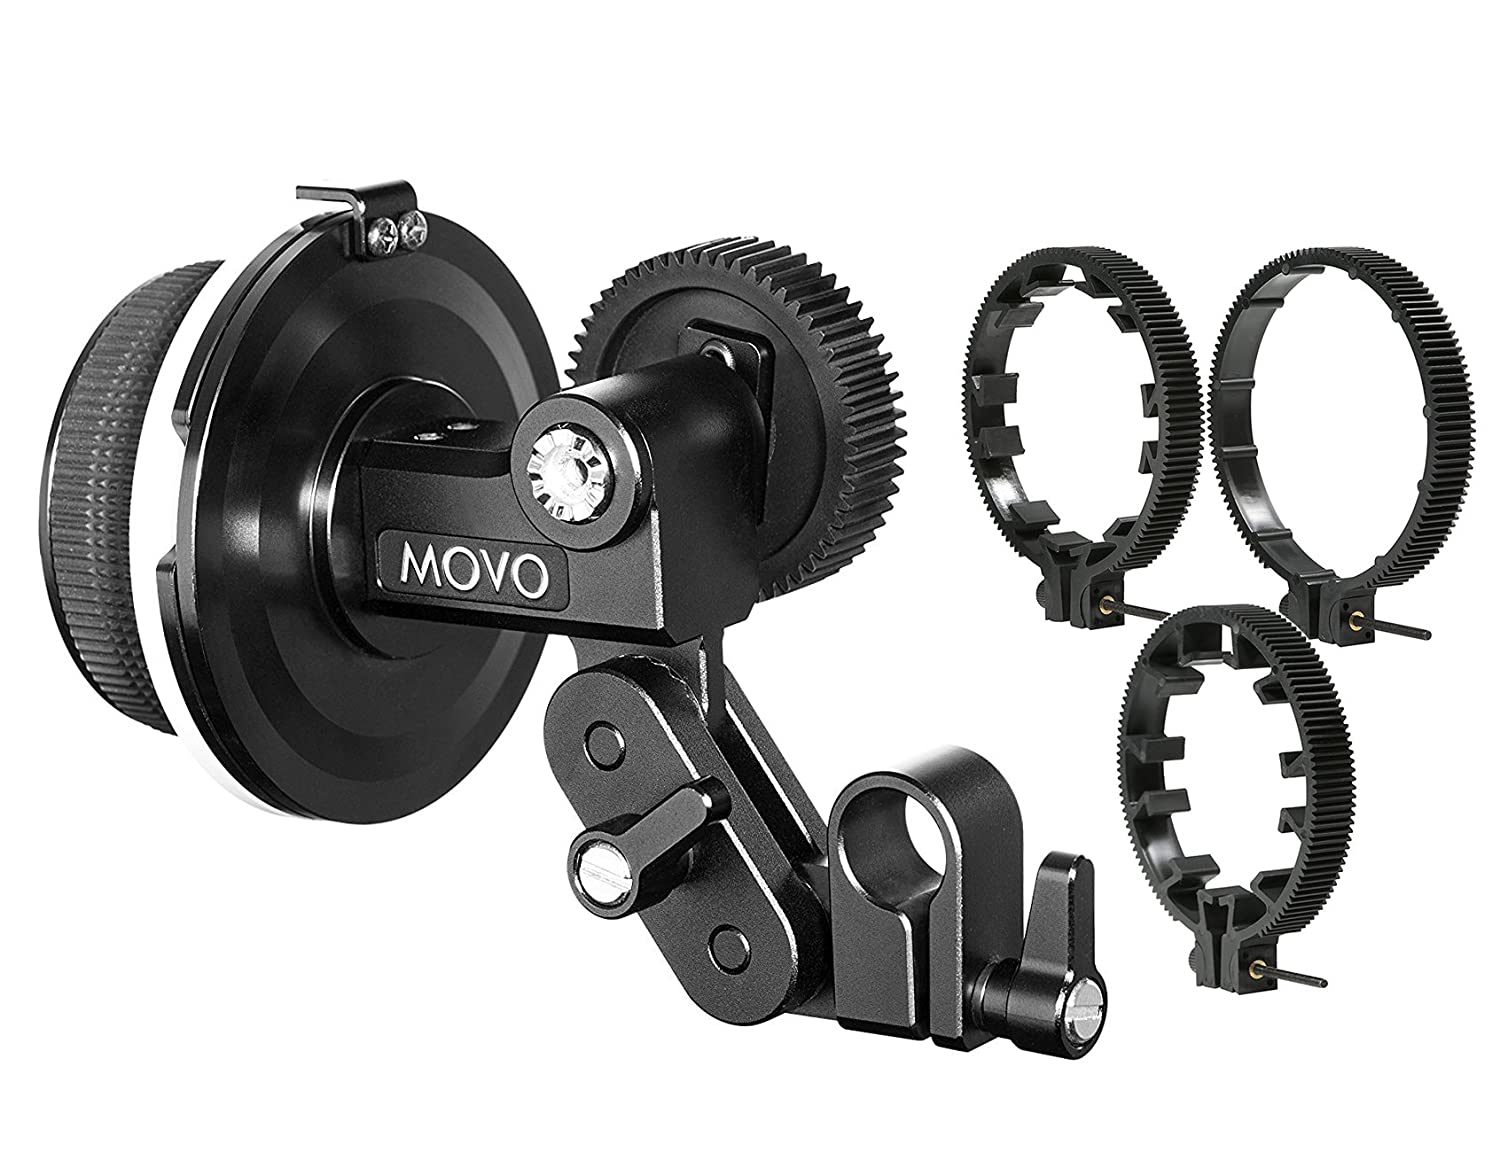 Movo F1X Precision Follow Focus System with 66mm, 77mm & 88mm Adjustable Gear Rings